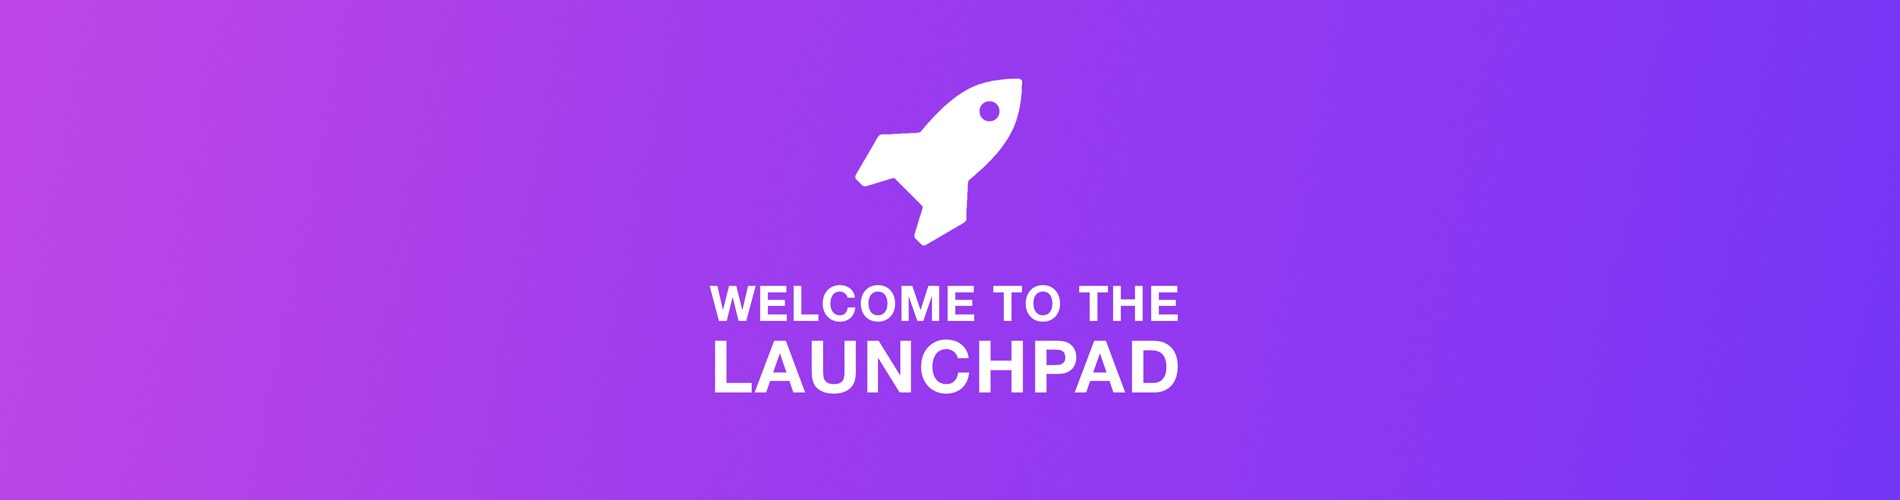 launchpad-log-in-master-slider